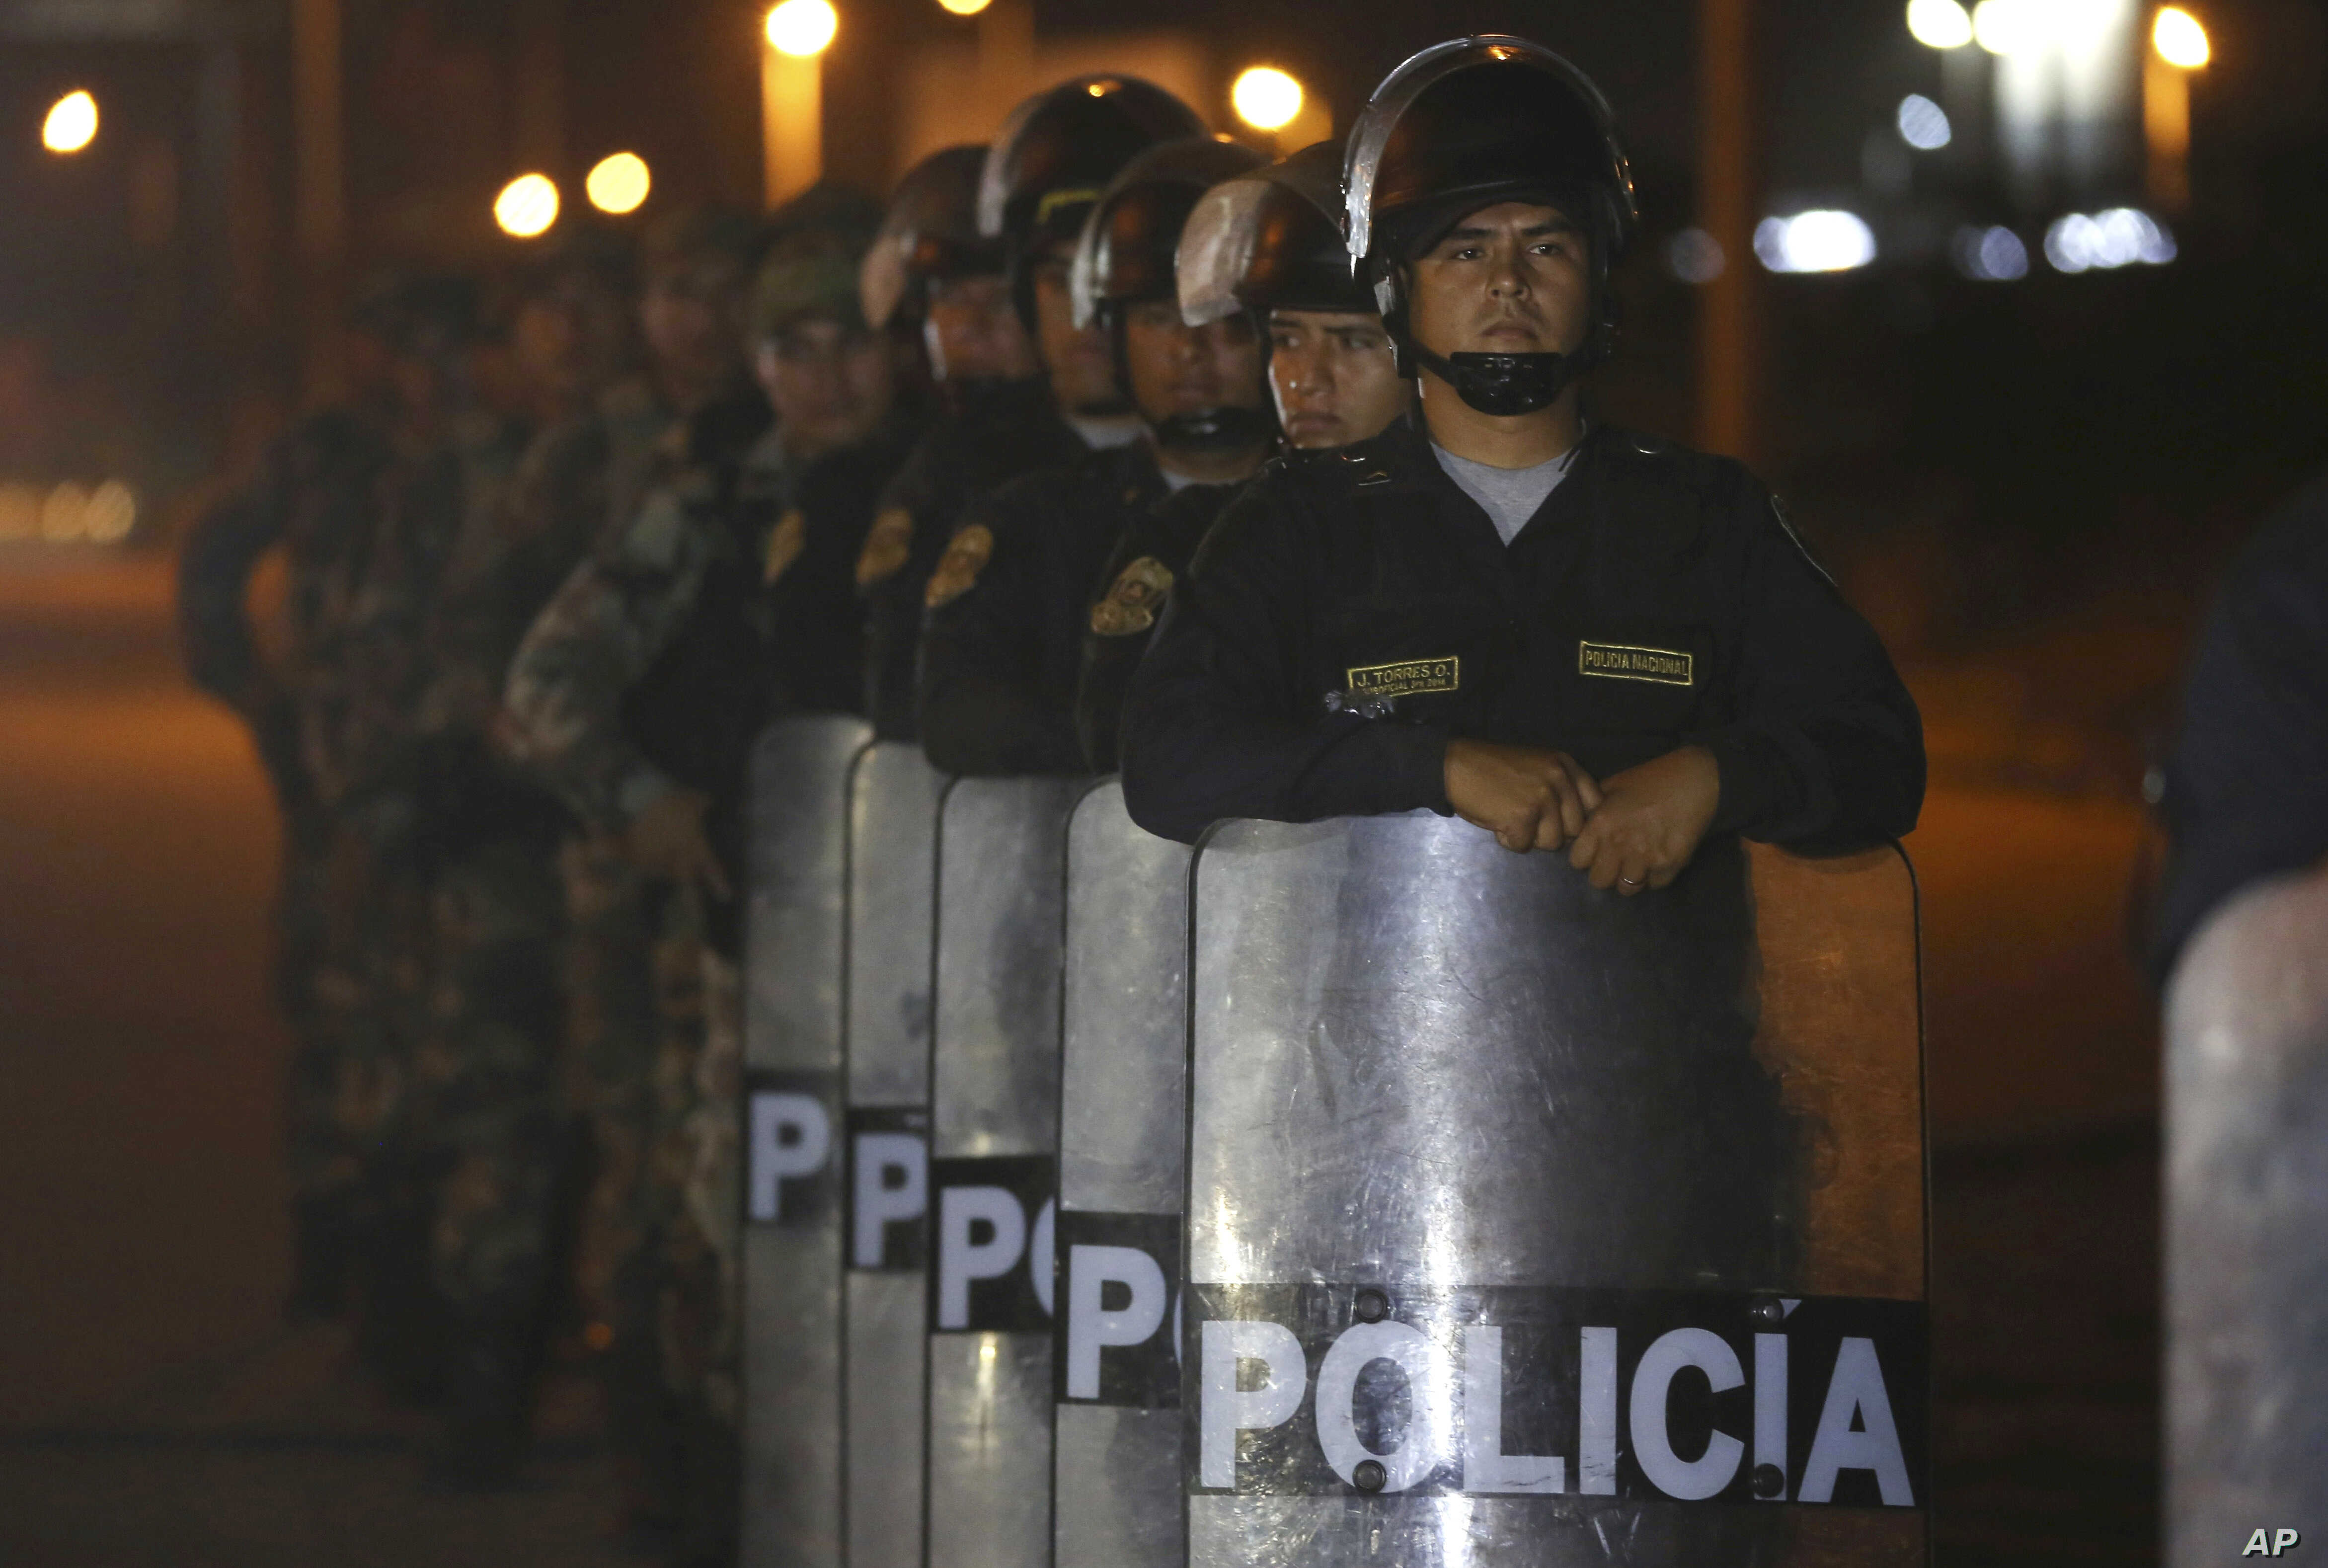 Police officers stand guard near Ecuador's border with Peru, in Tumbes, Peru, June 15, 2019.